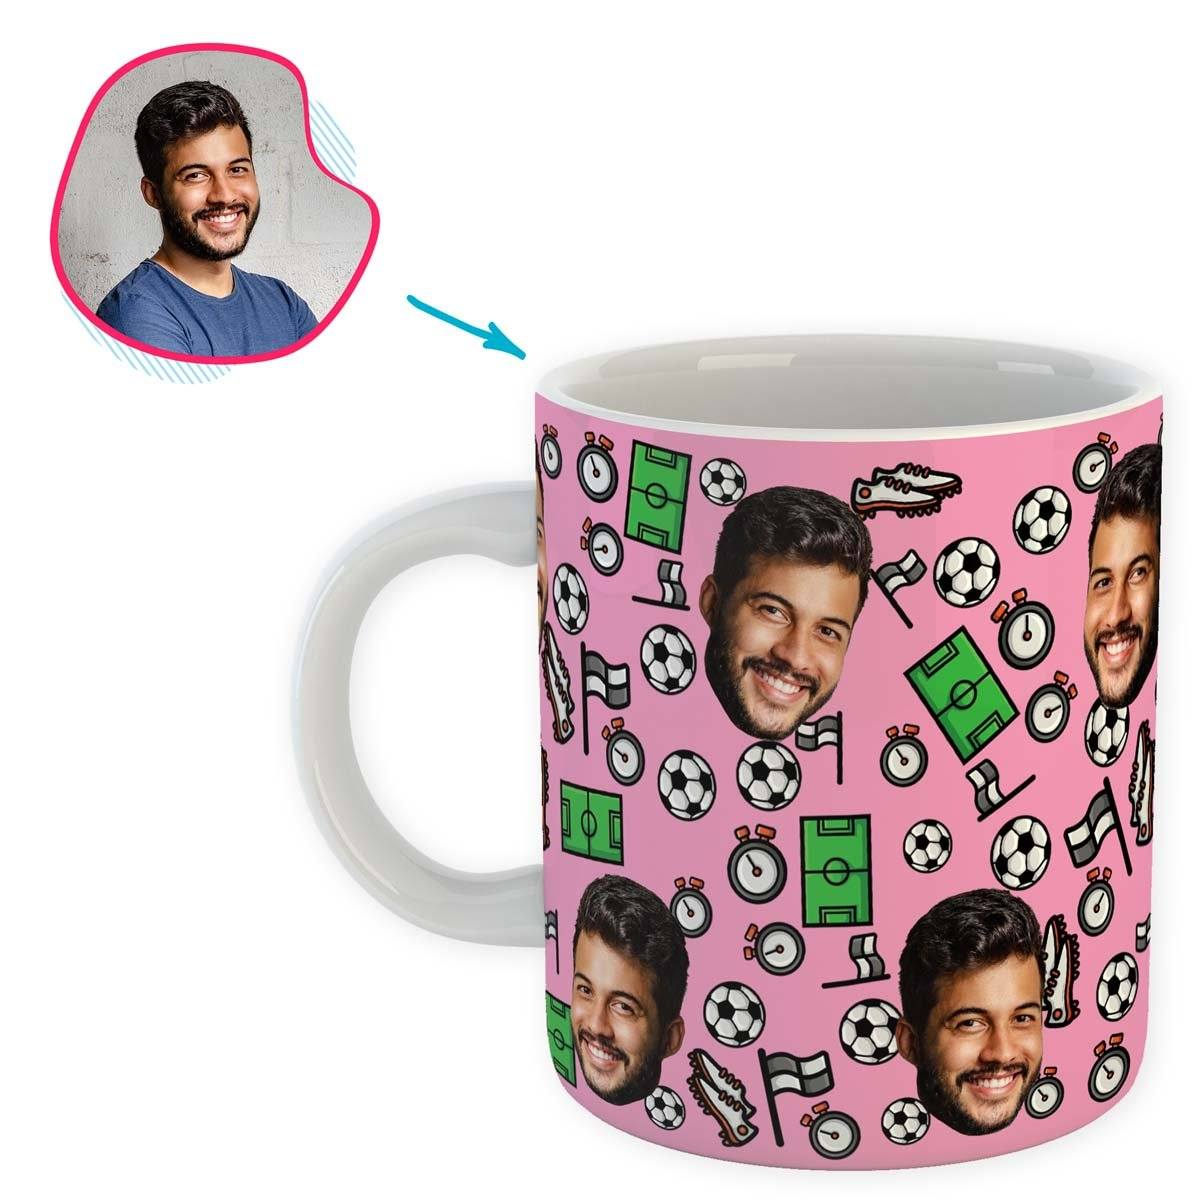 pink Football mug personalized with photo of face printed on it